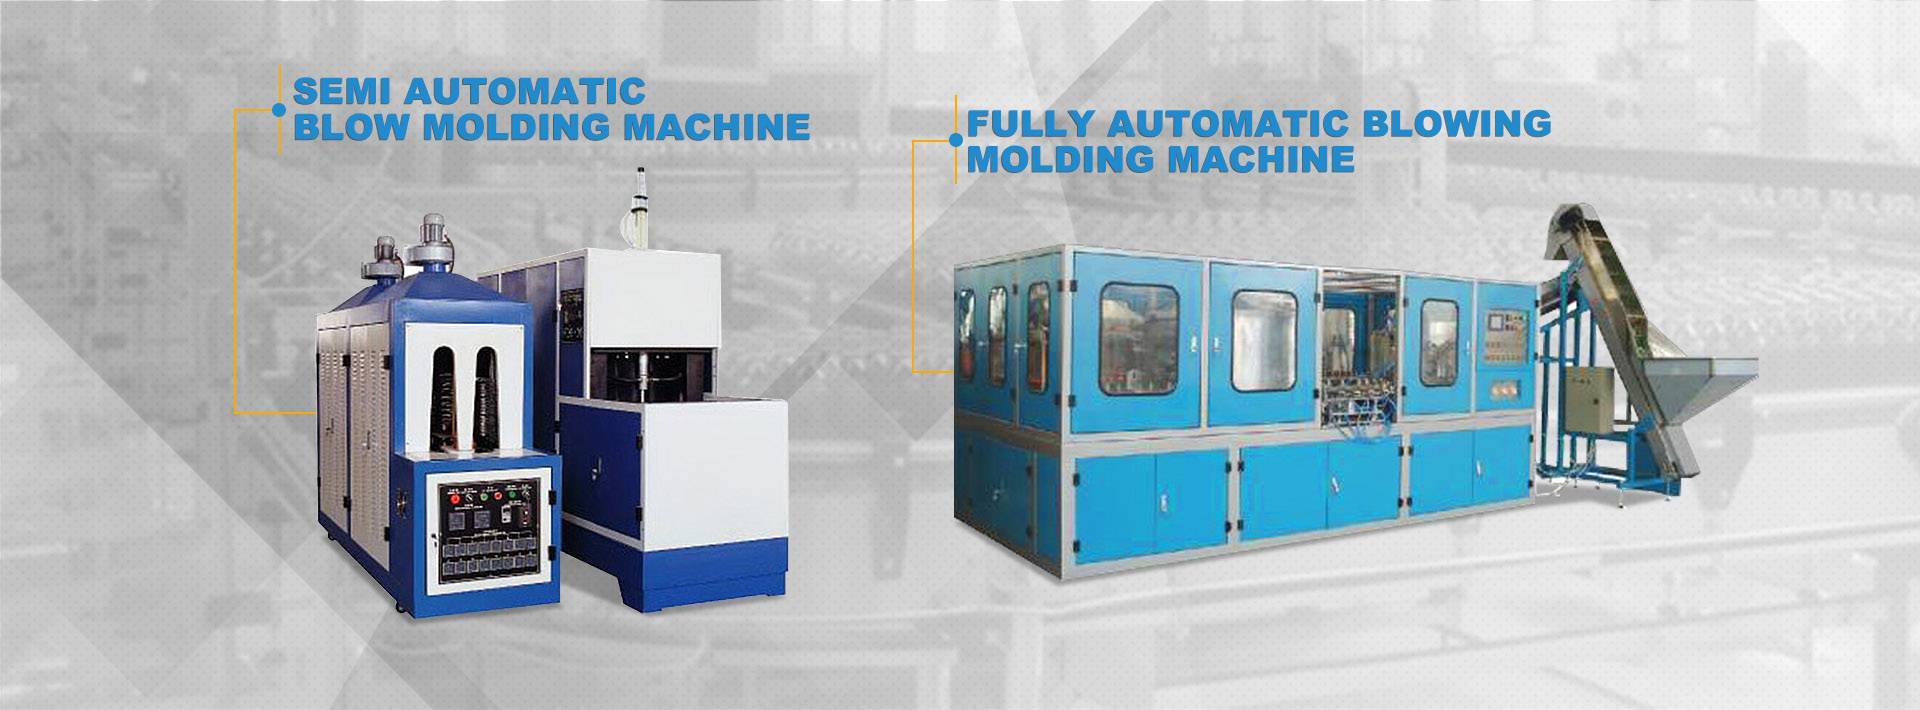 Semi Automatesch Blow Molding Machine